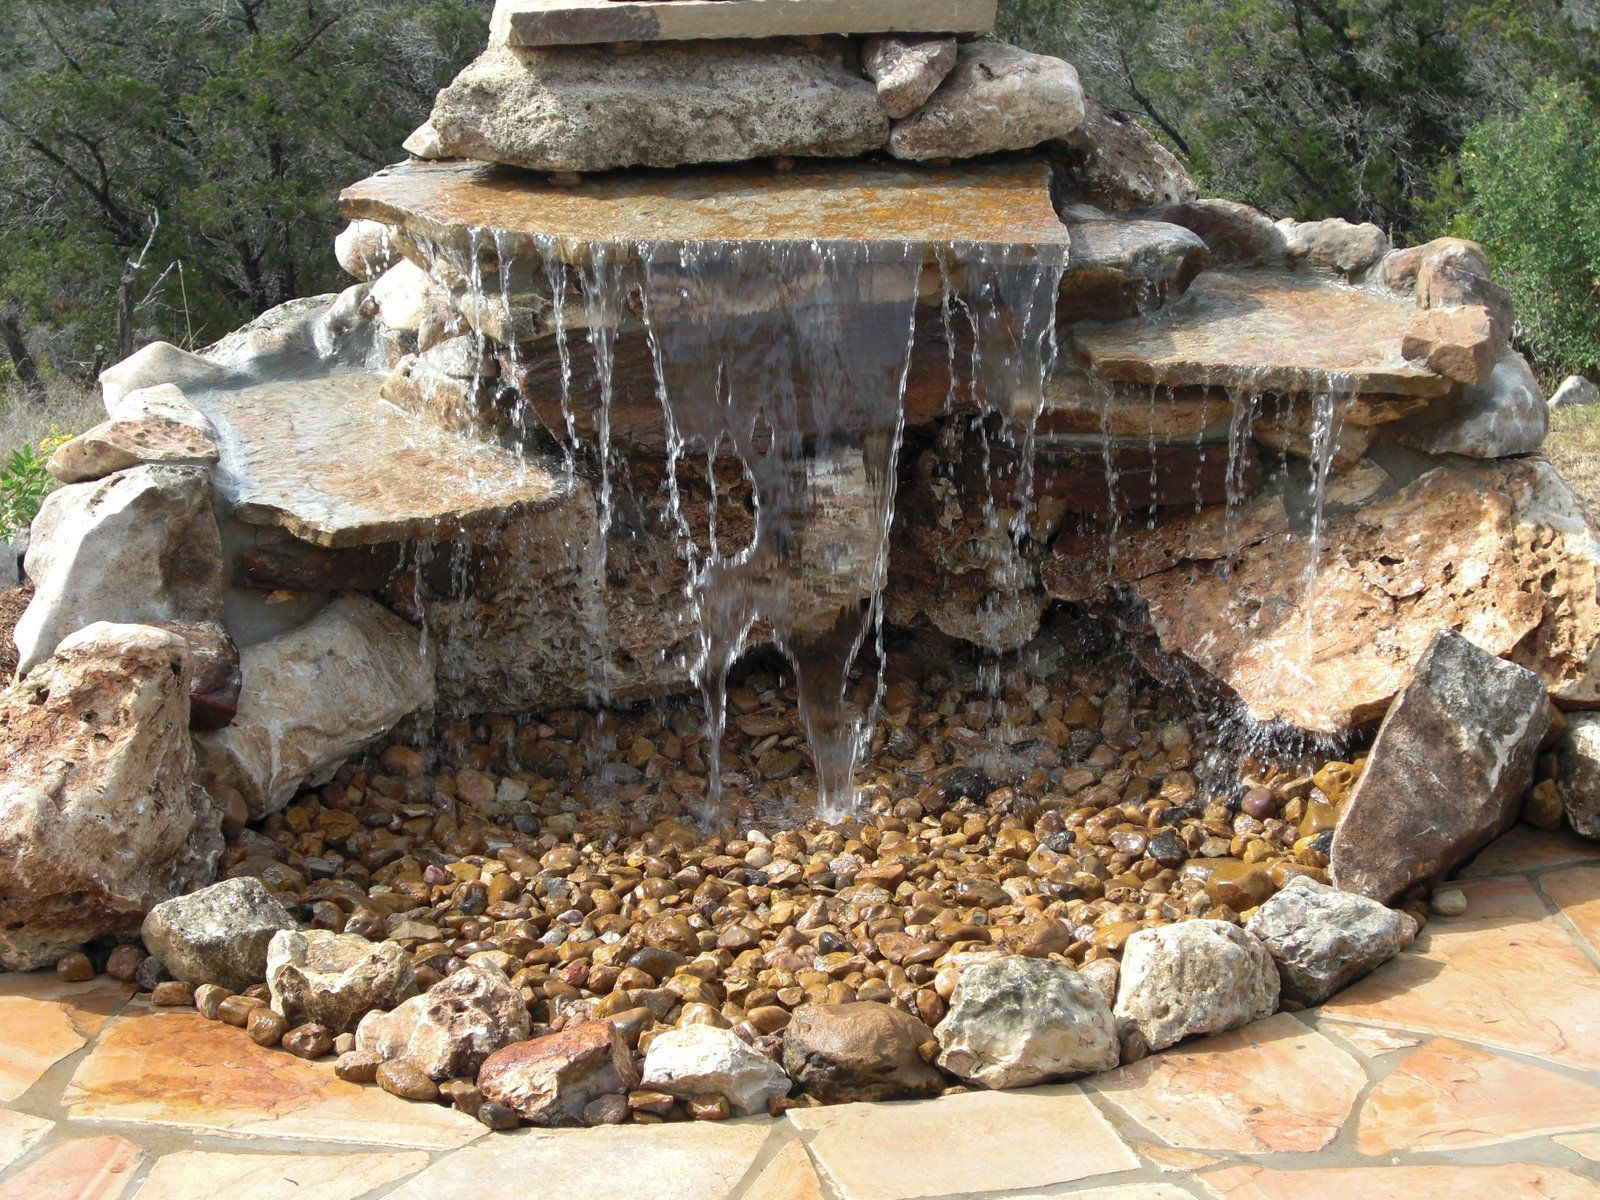 Small backyard ponds and waterfalls - Adorable Minimalist Pond Less Waterfall With Small And Large Rocks Design For Small Backyard Outdoor Design